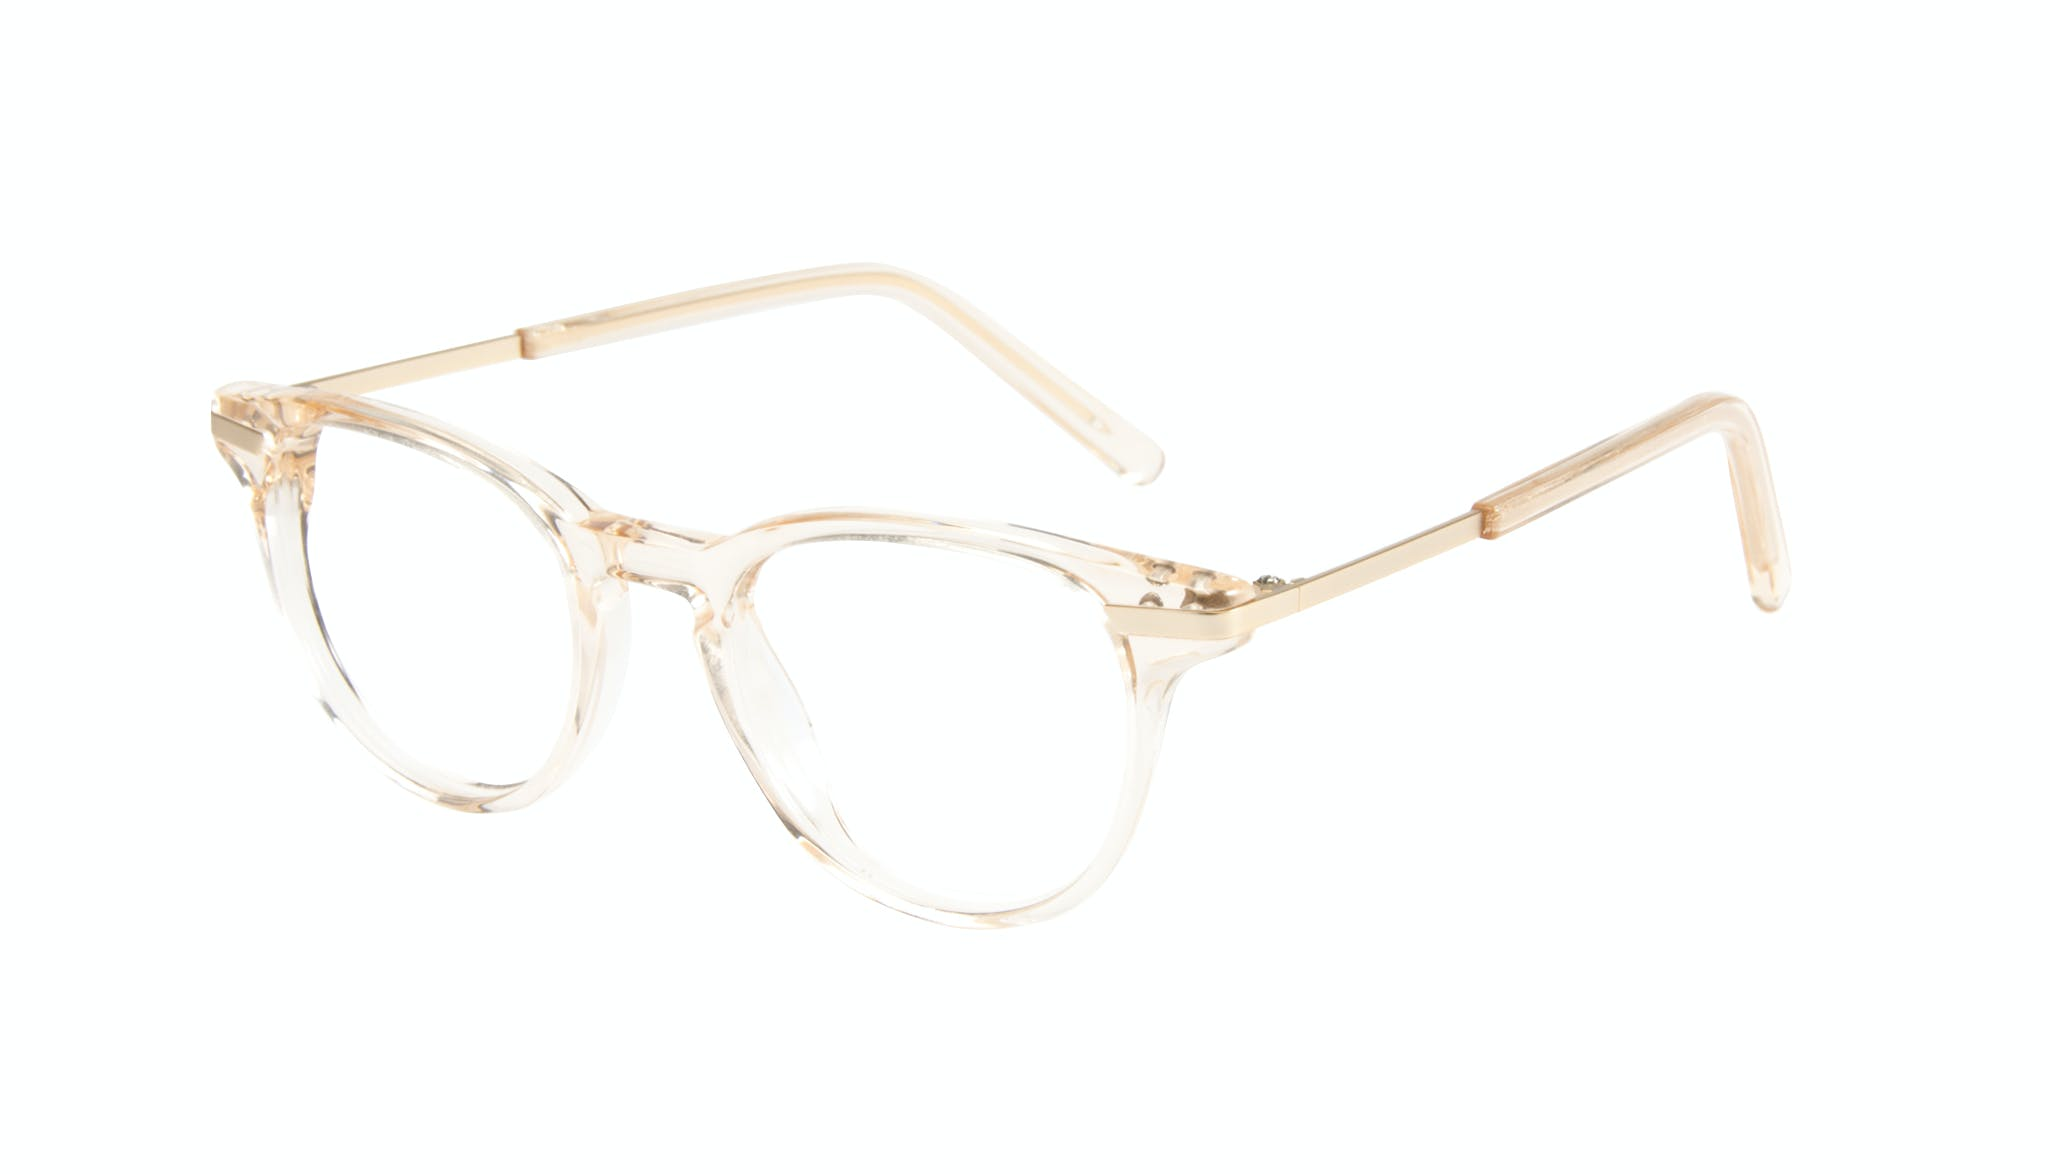 Affordable Fashion Glasses Round Eyeglasses Women Spark Blond Tilt